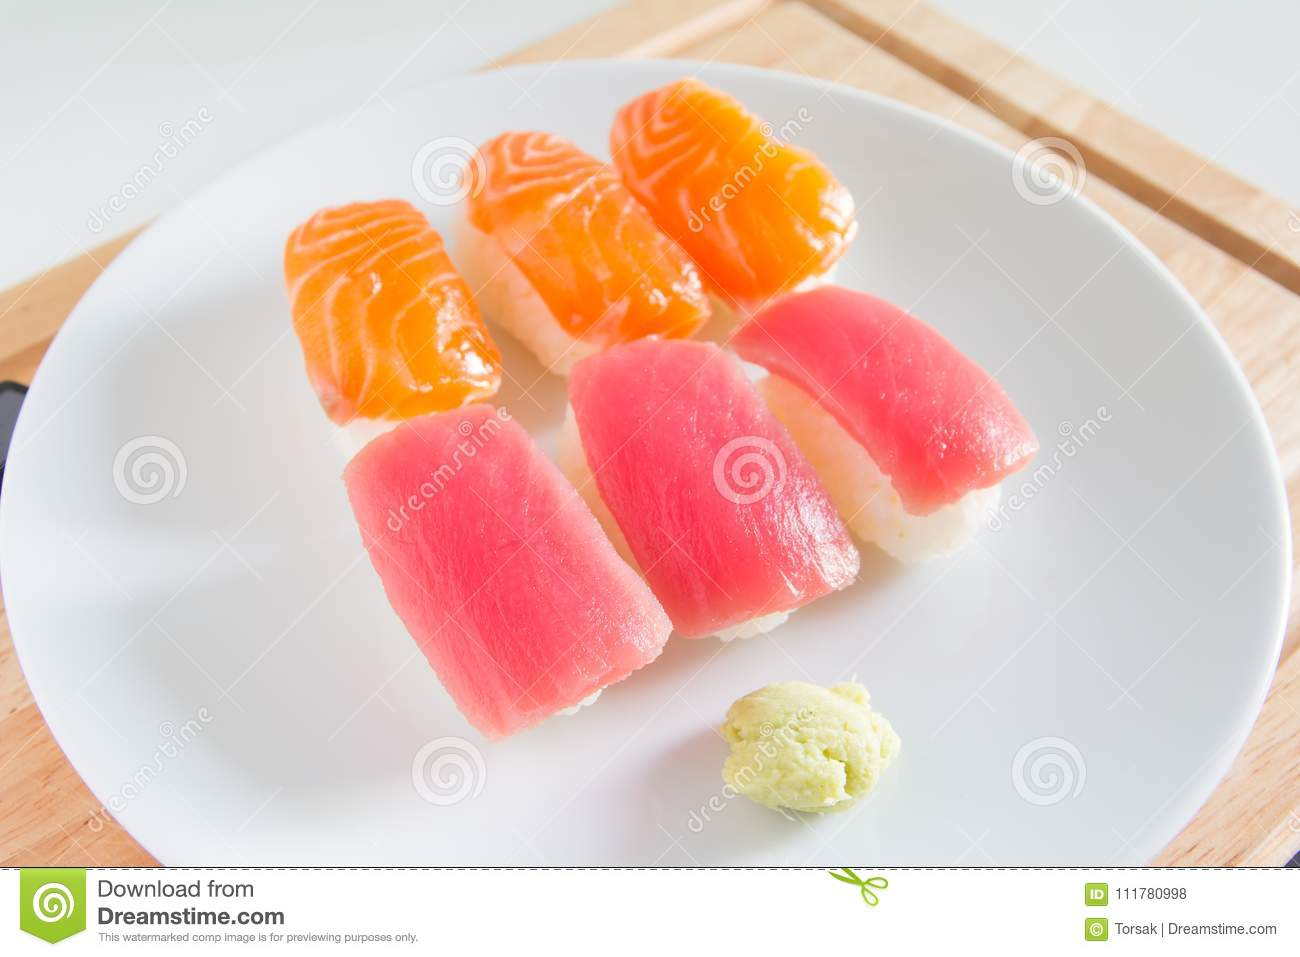 Sushi set on white plate. Janpan food